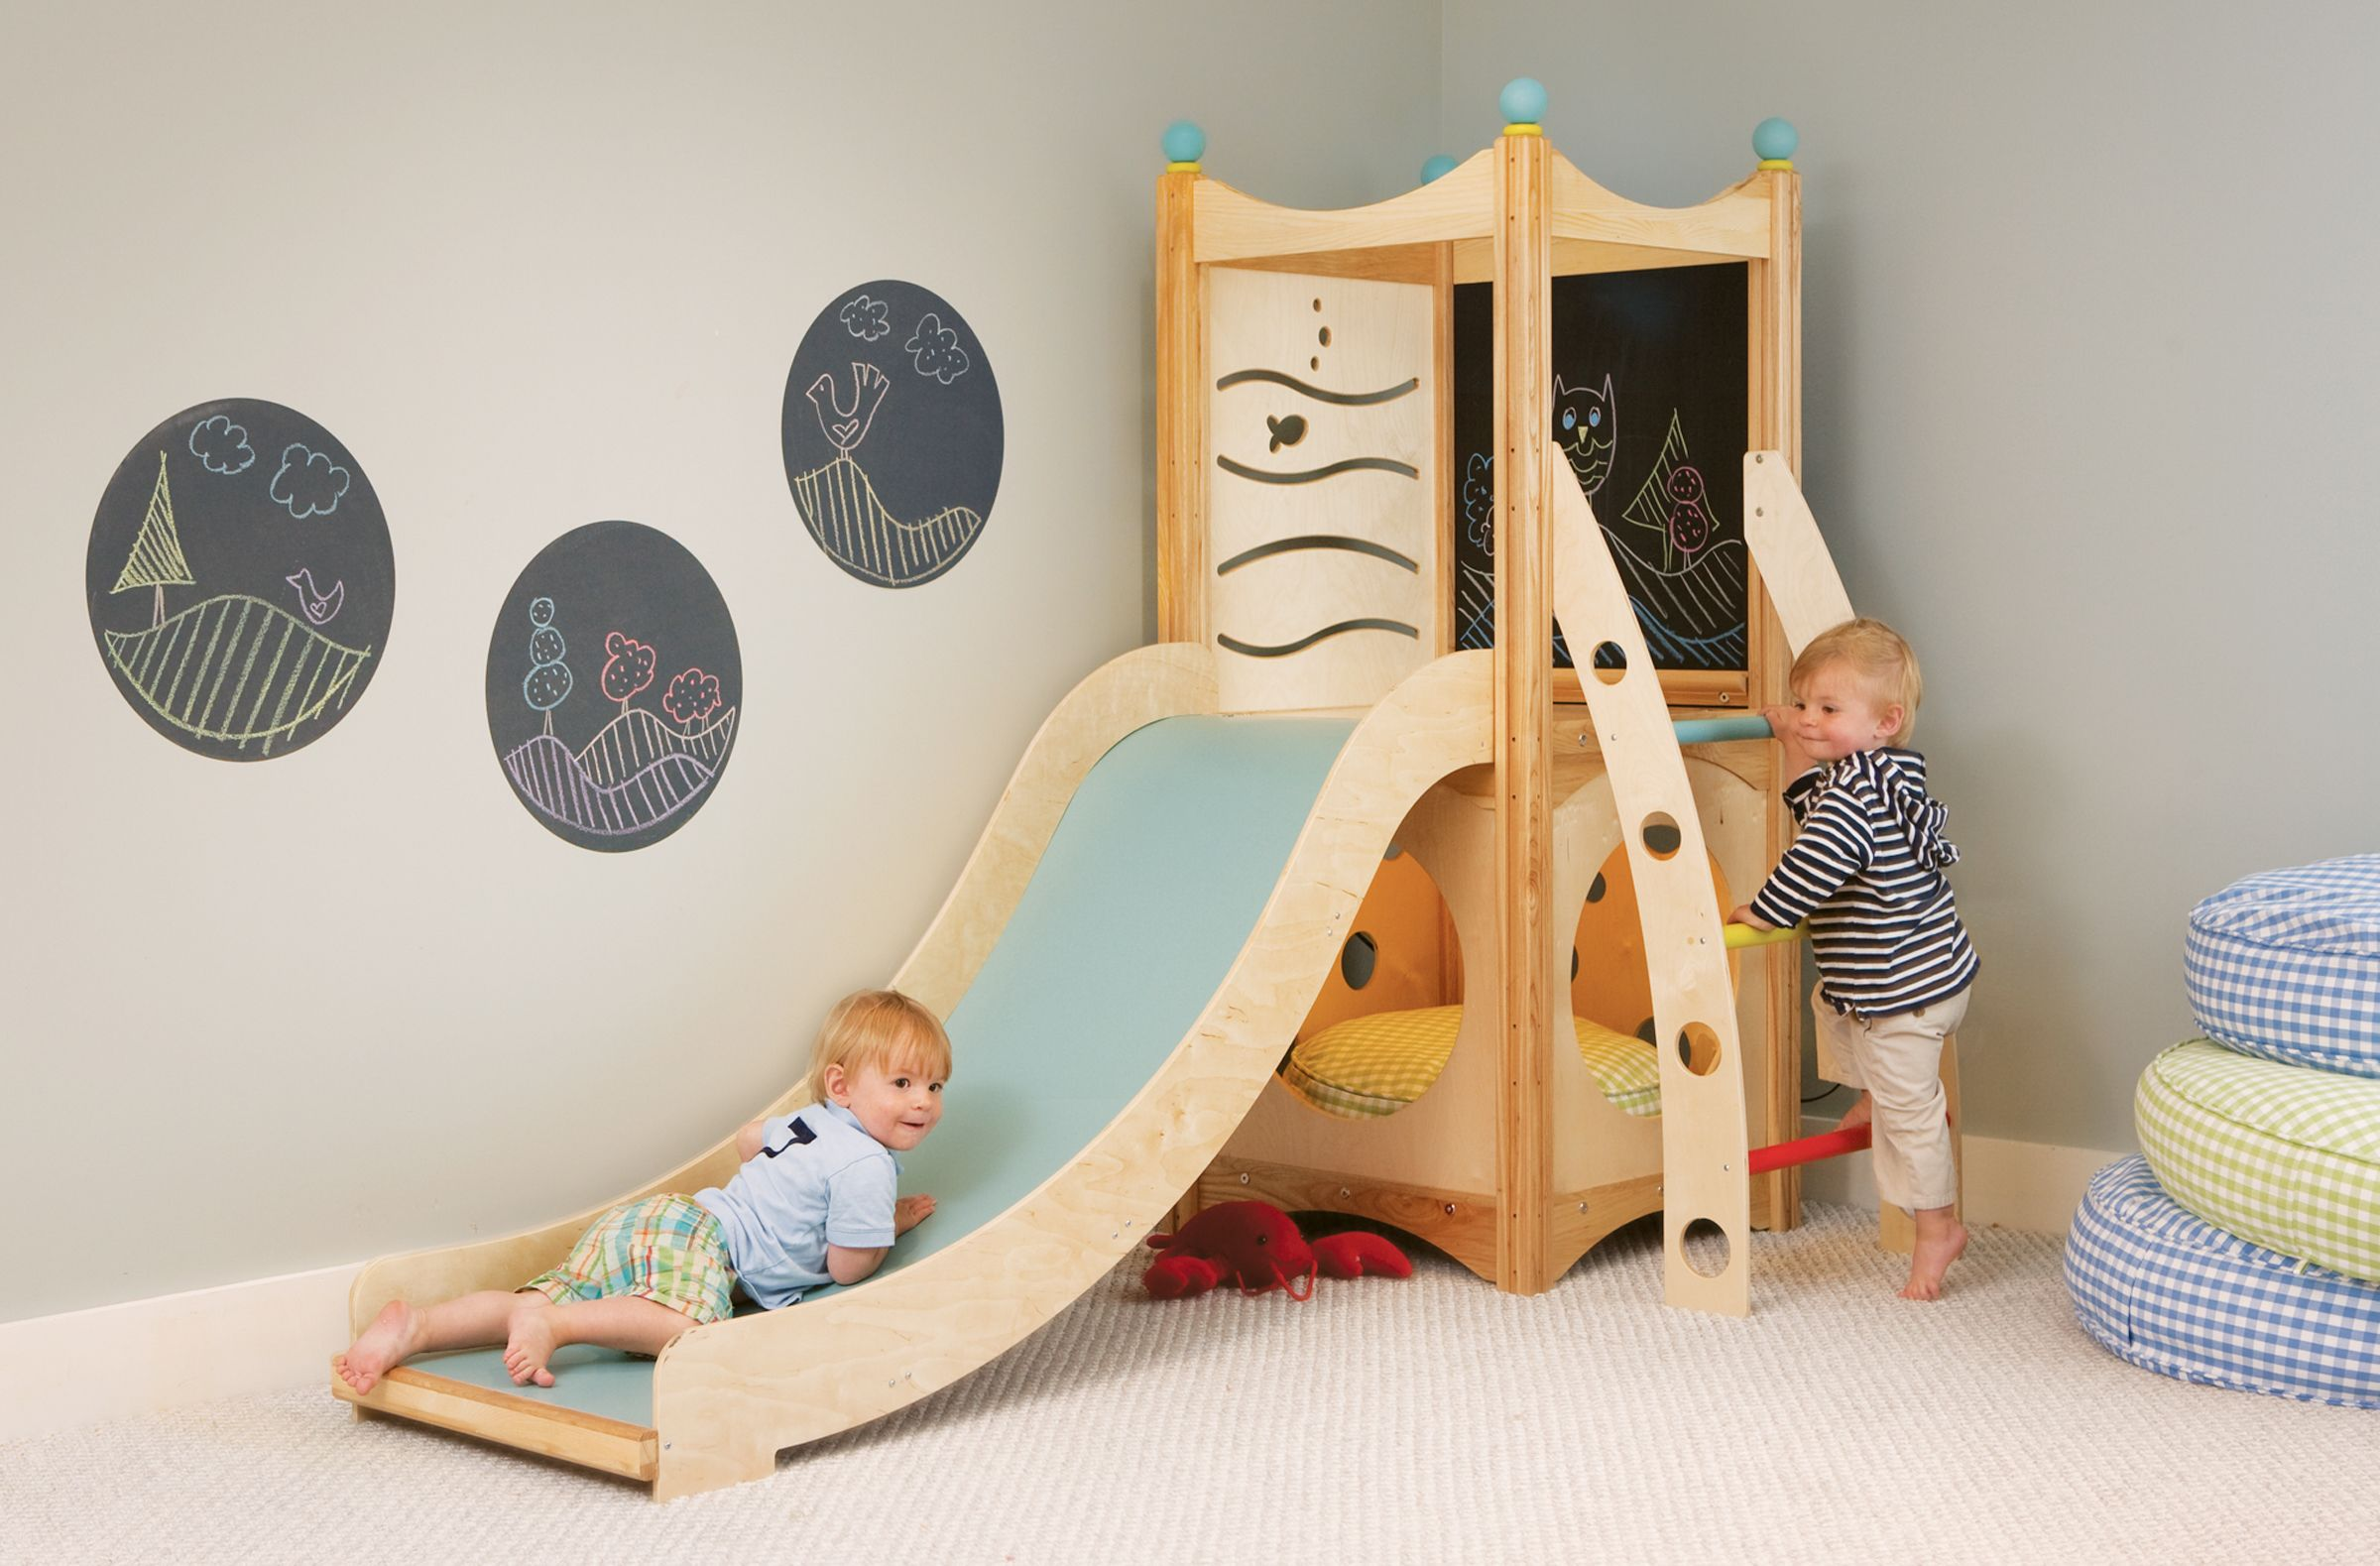 Rhapsody 1 Indoor Playsets and Playbeds | CedarWorks | Kids ...